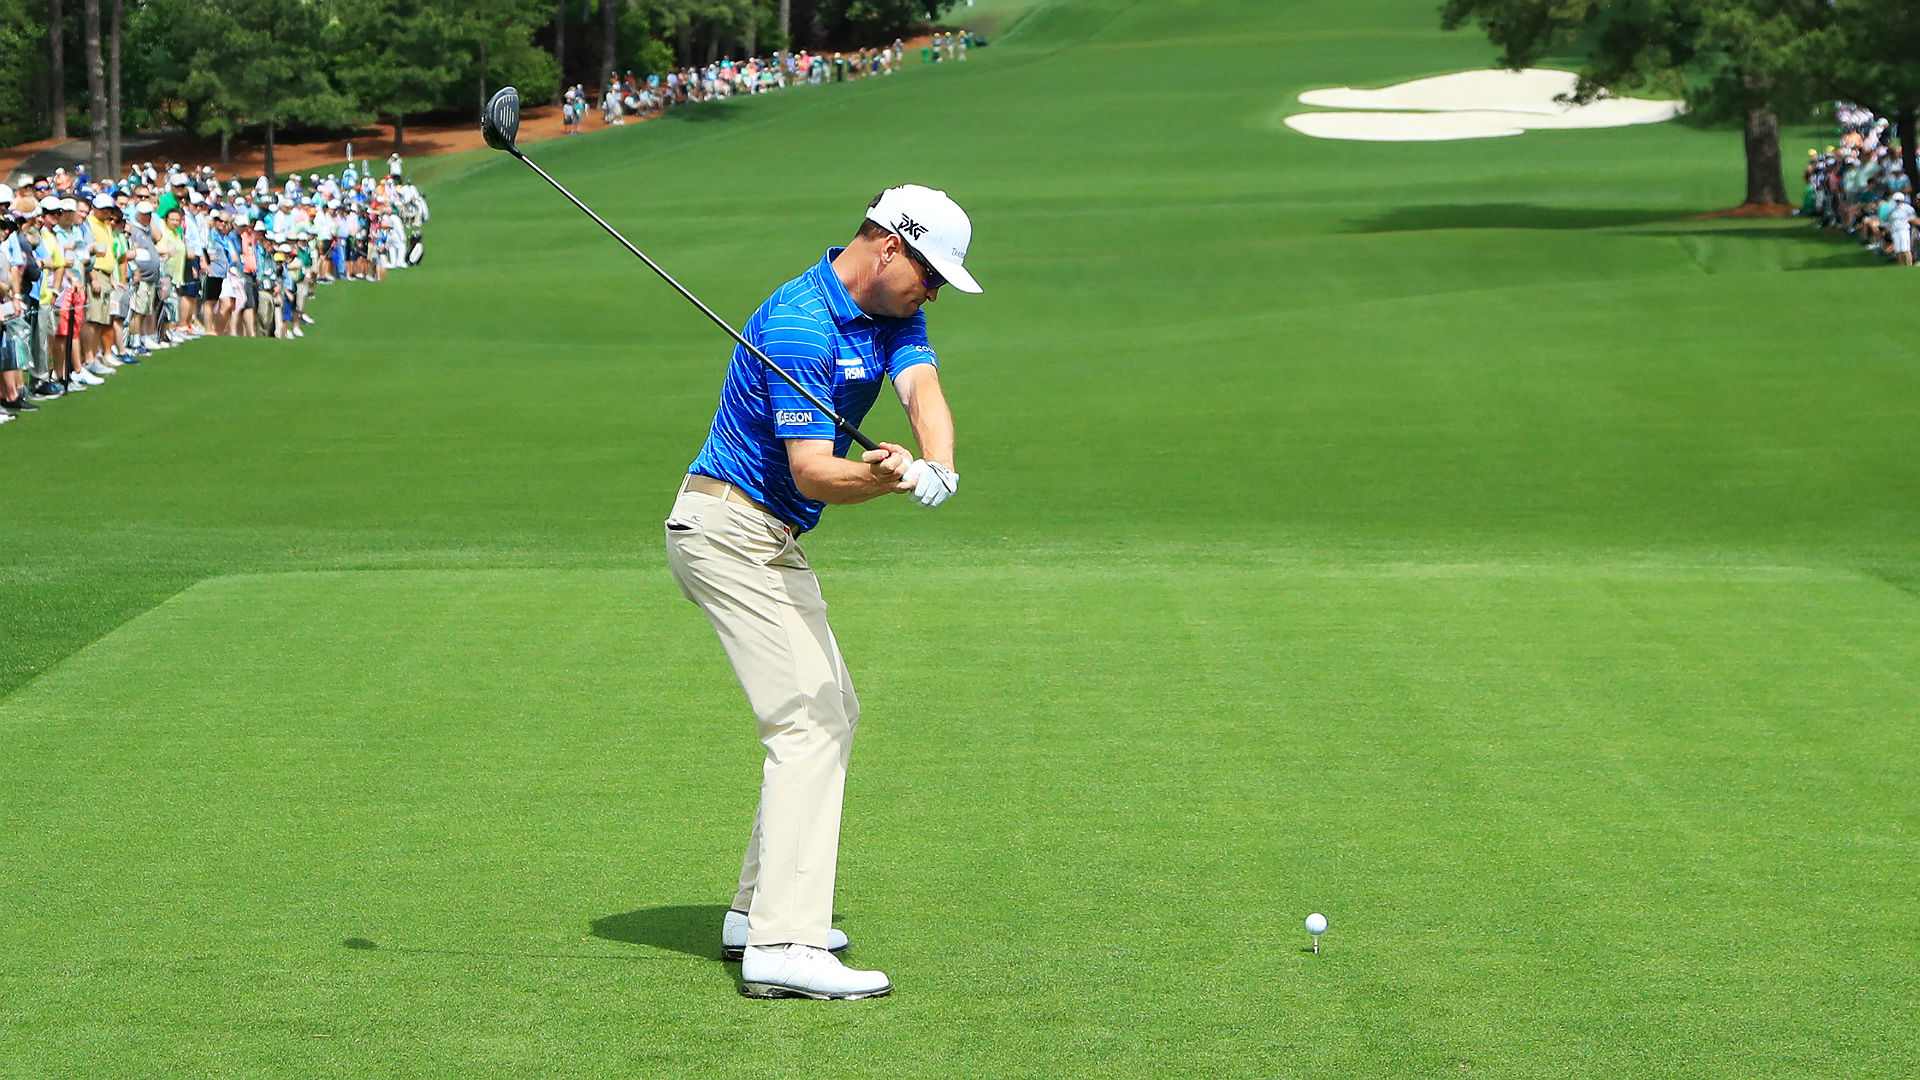 Zach Johnson's practice swing doesn't miss the ball